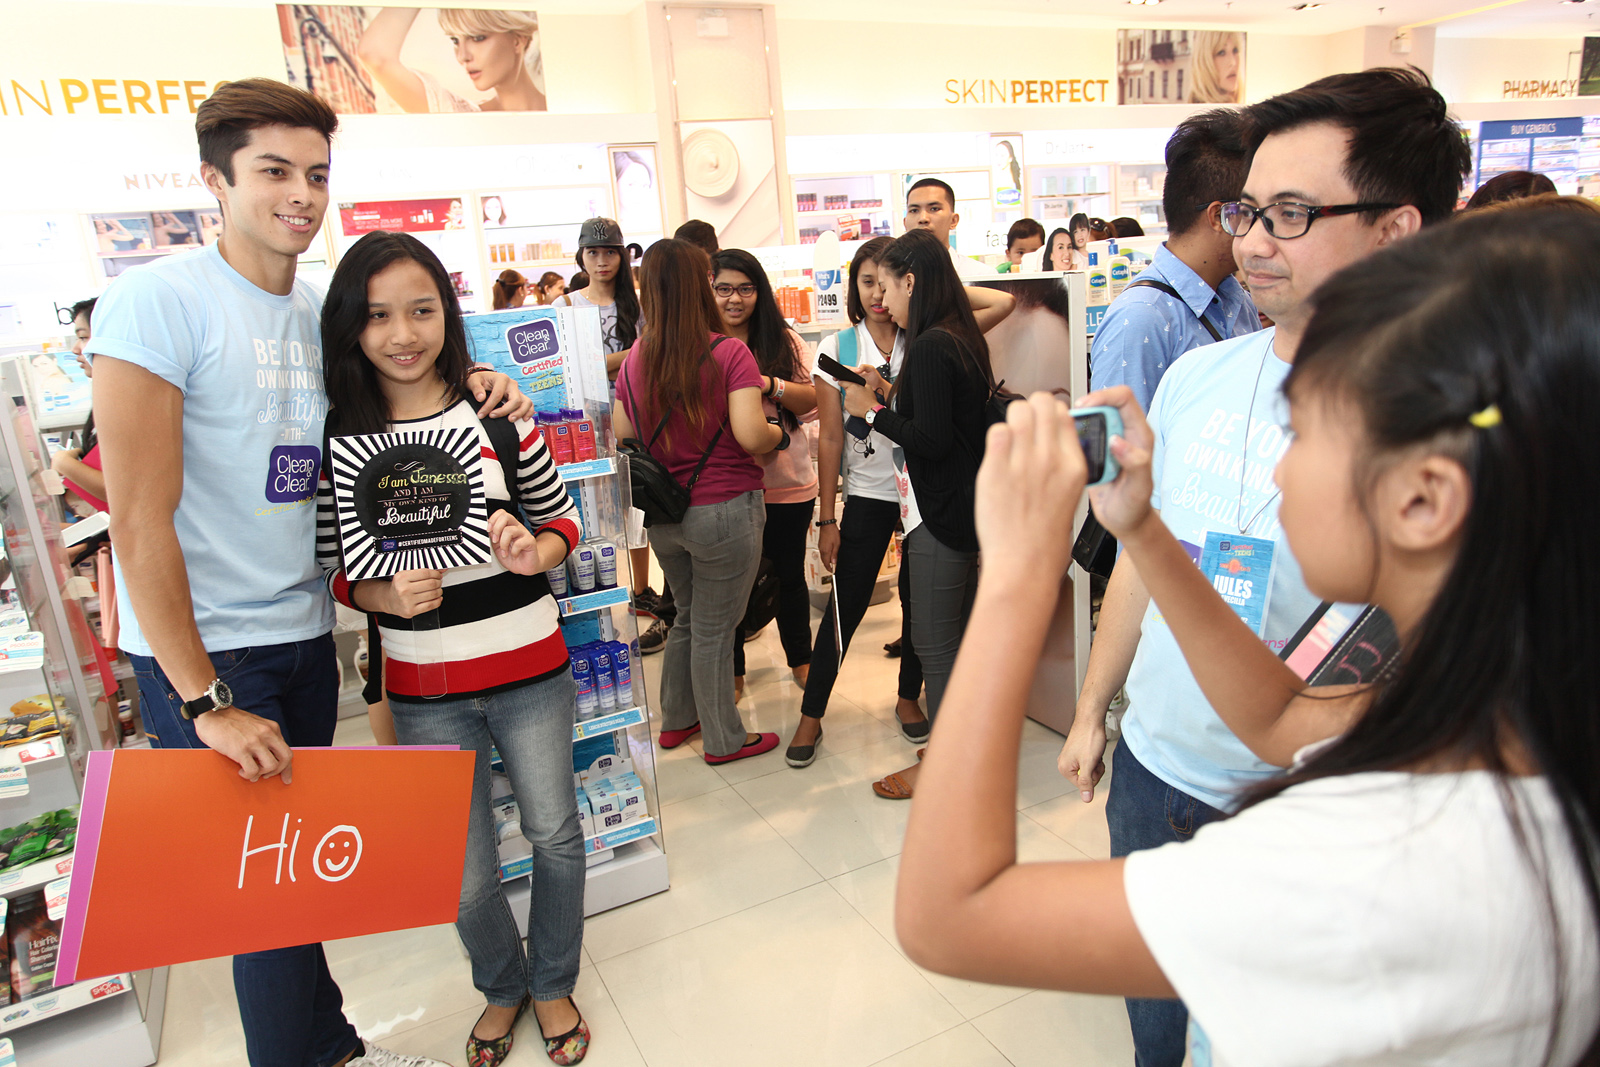 LA Aguinaldo at Clean & Clear Event